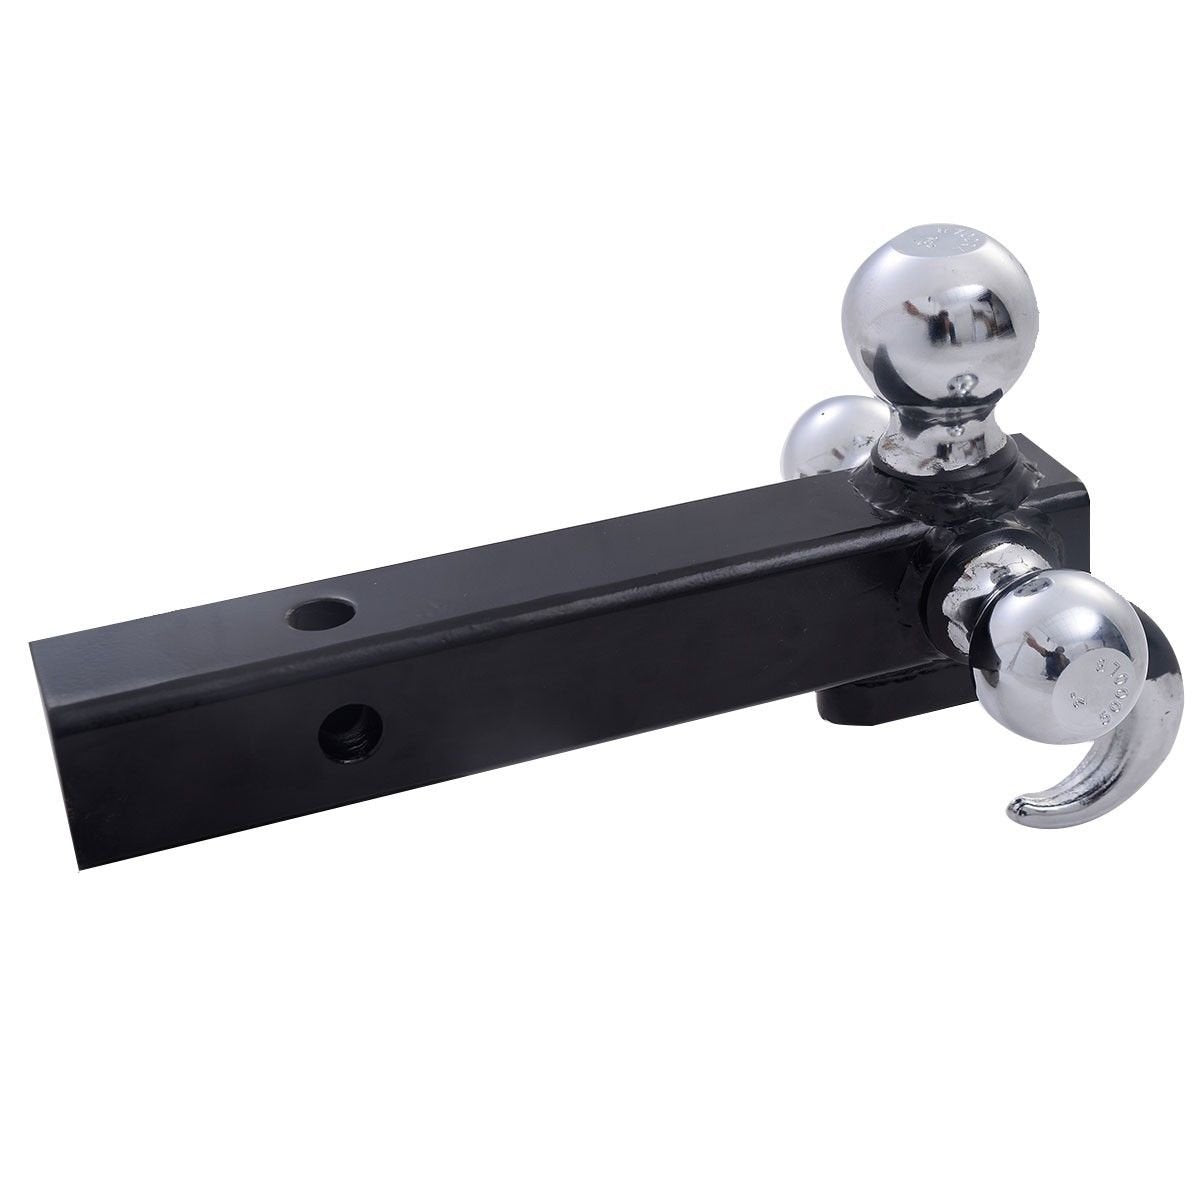 "Triple 3 Ball Trailer tow Hitch Receiver Mount 1 7/8"" 2"" 2 5/16"" Towing  w/ Hook"